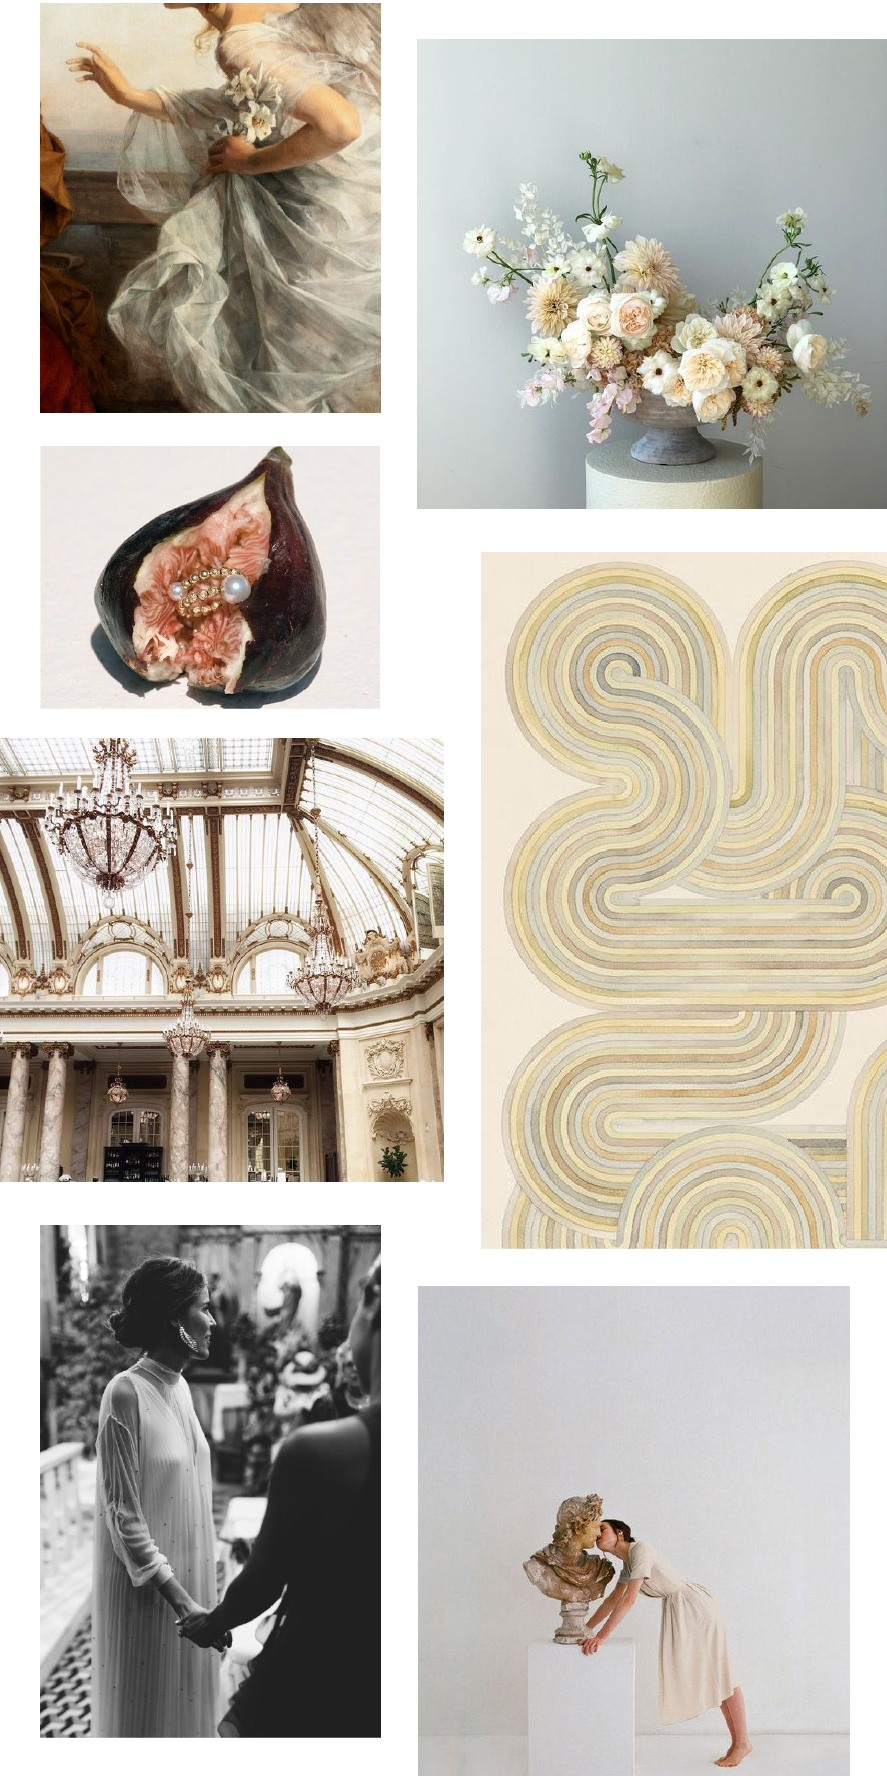 Daisy Mankee - February Mood Board - Marketing and Branding Strategy.png